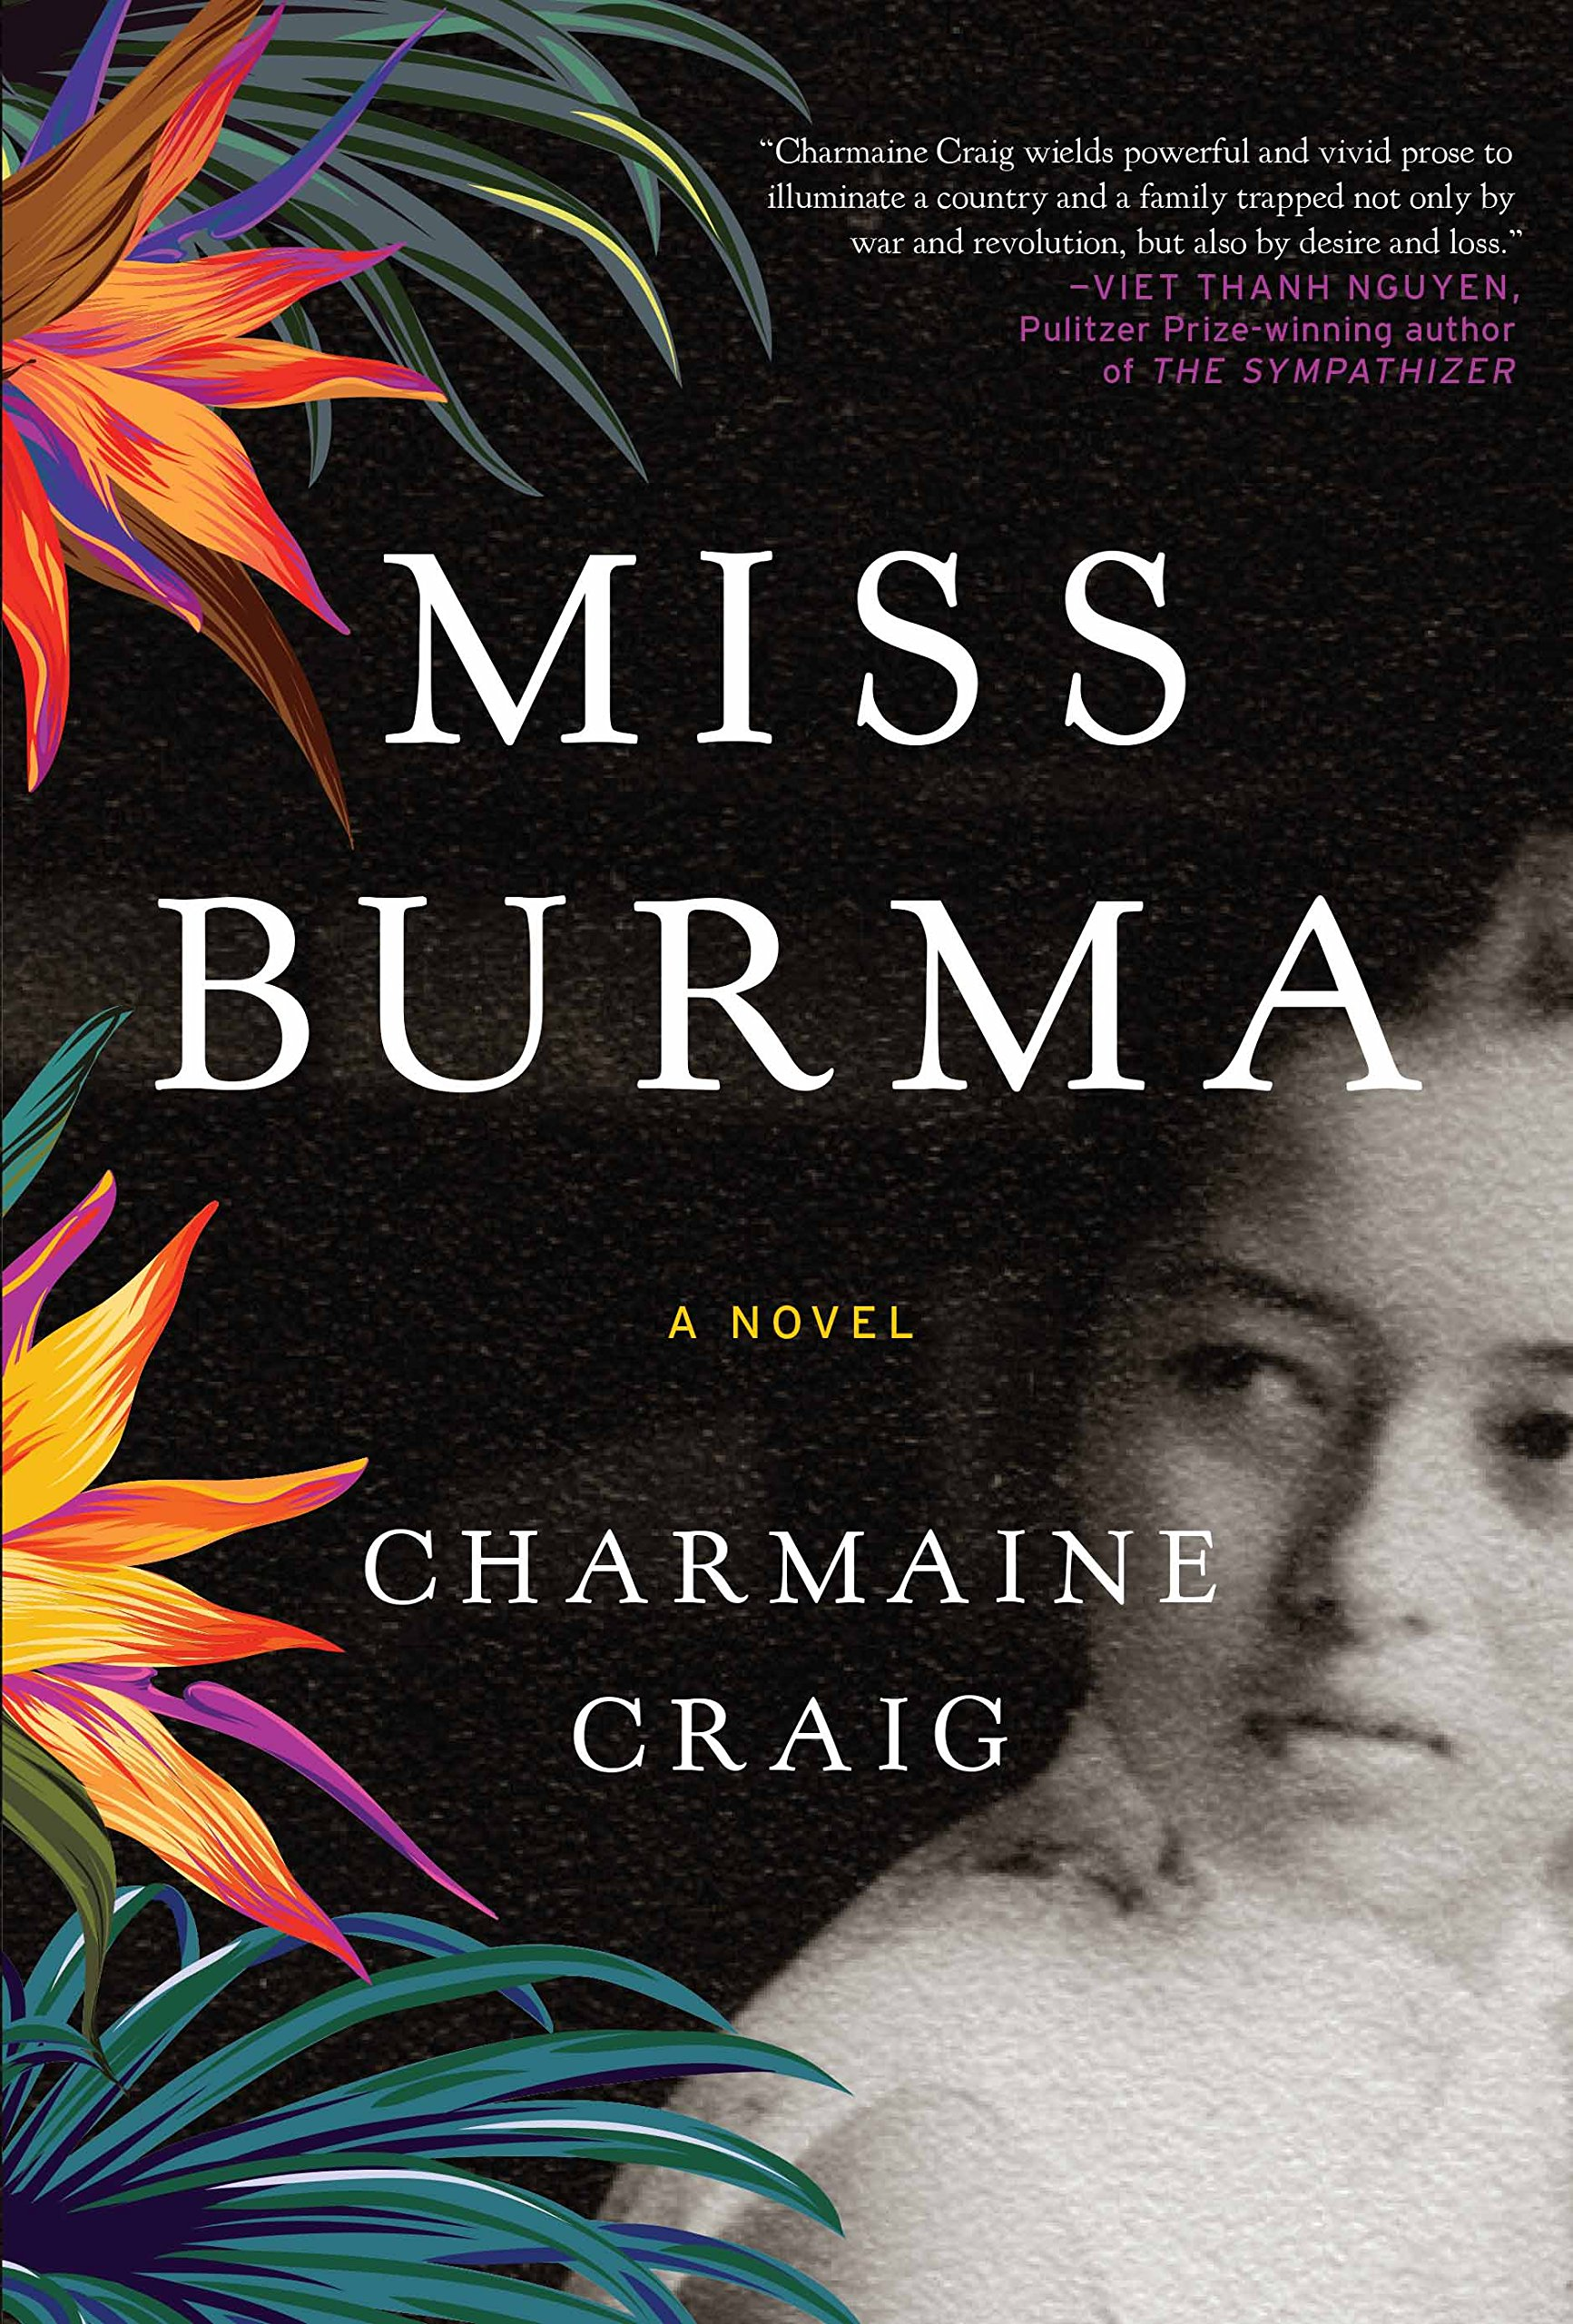 Image result for Miss Burma by Charmaine Craig